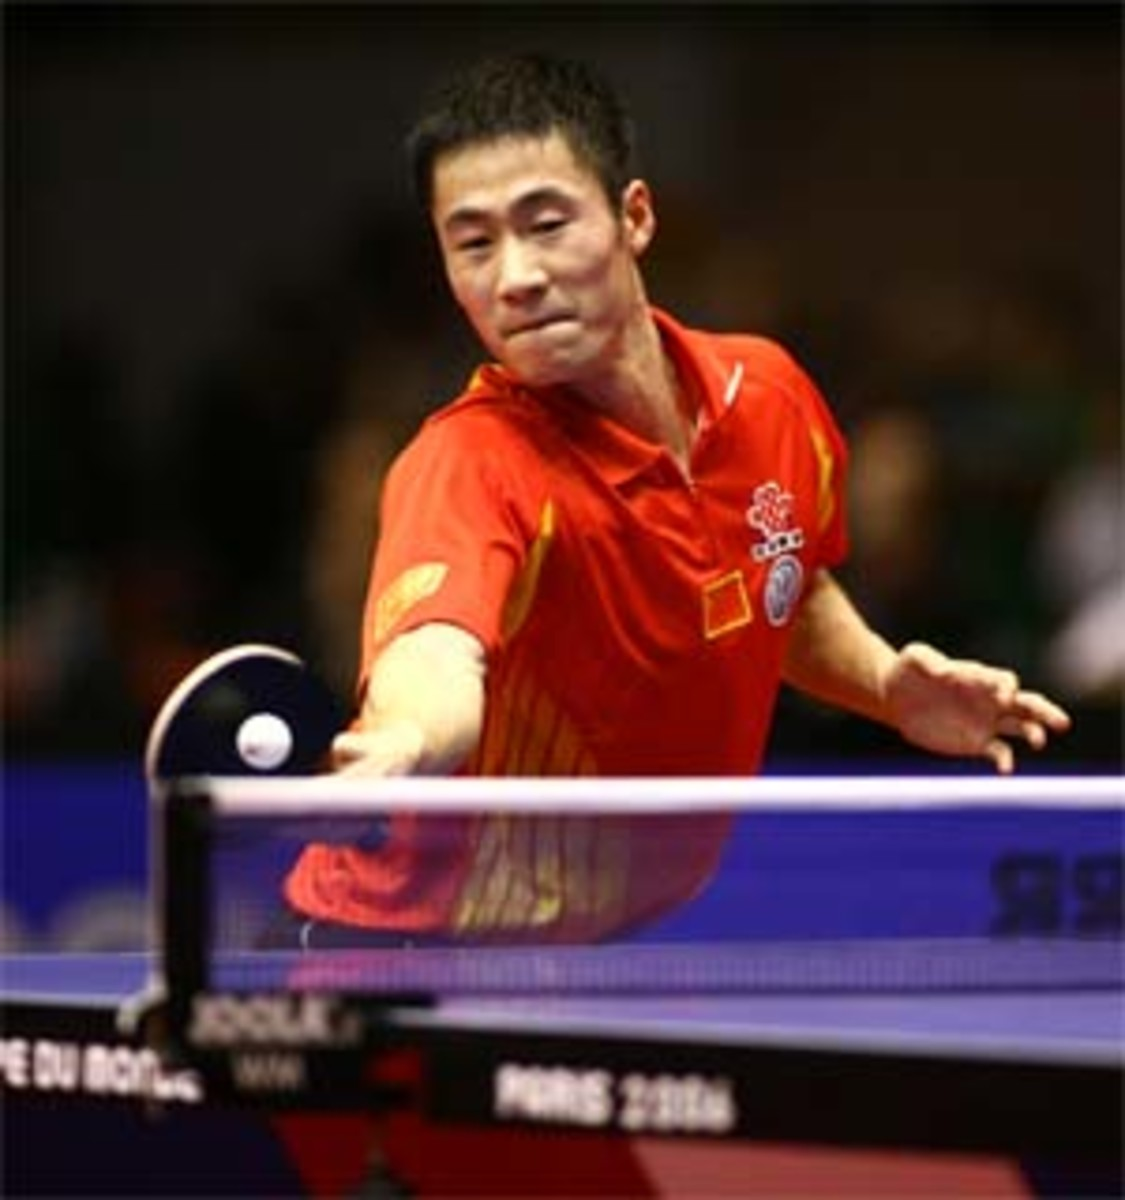 Wang Liqin of China - the 2001, 2005 and 2007 World Champion - He makes it look so easy. - Ping Pong and Table Tennis Difference, History, Fun Facts